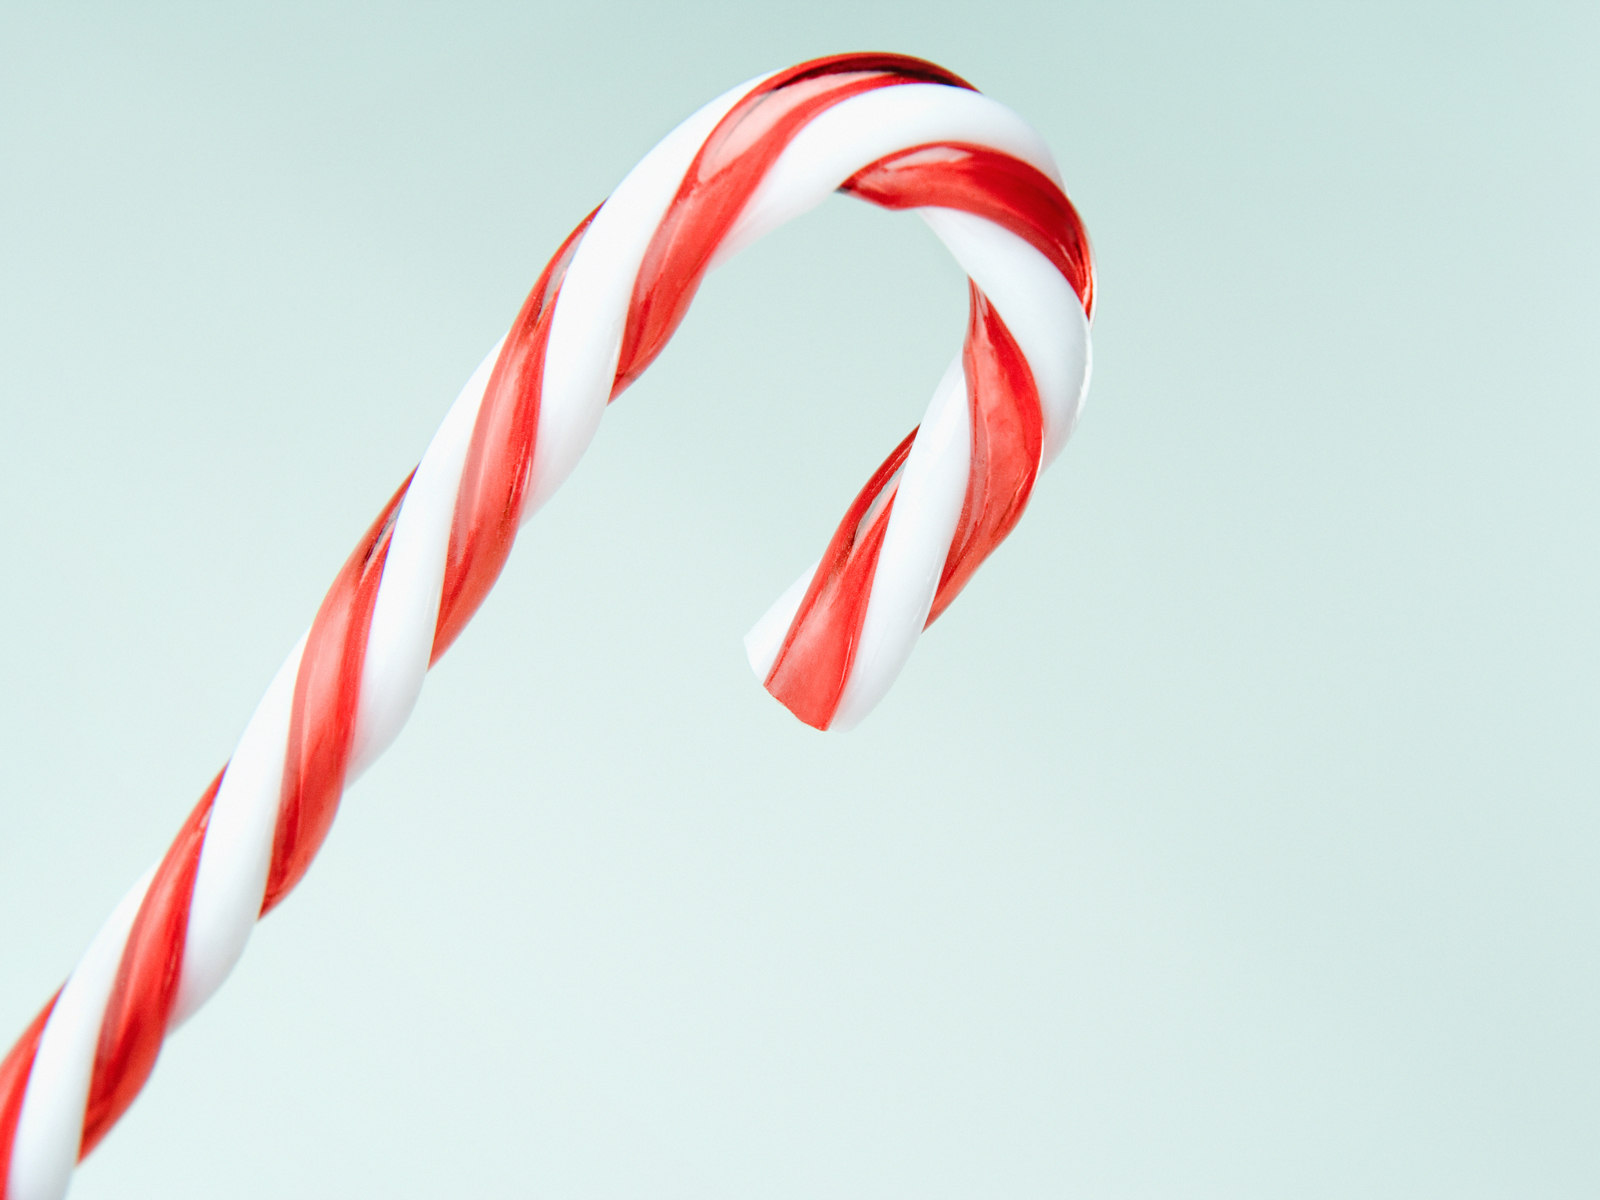 Candy Cane Pictures wallpaper 1600x1200 26252 1600x1200